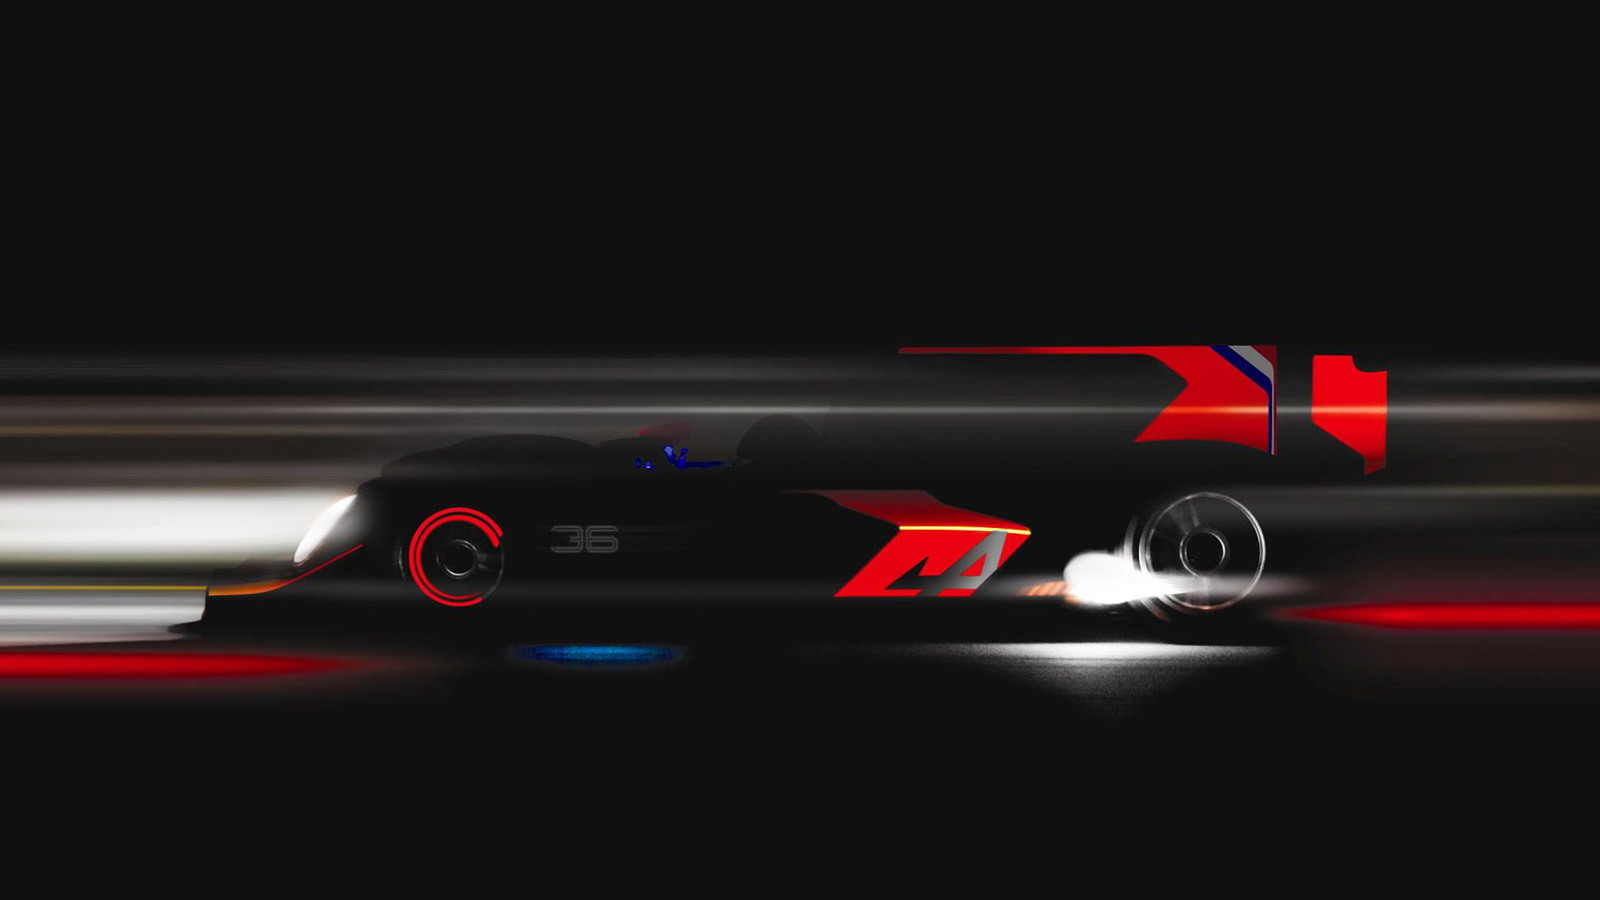 Renault to enter the 24 Hours of Le Mans in 2013 with Alpine-branded prototype